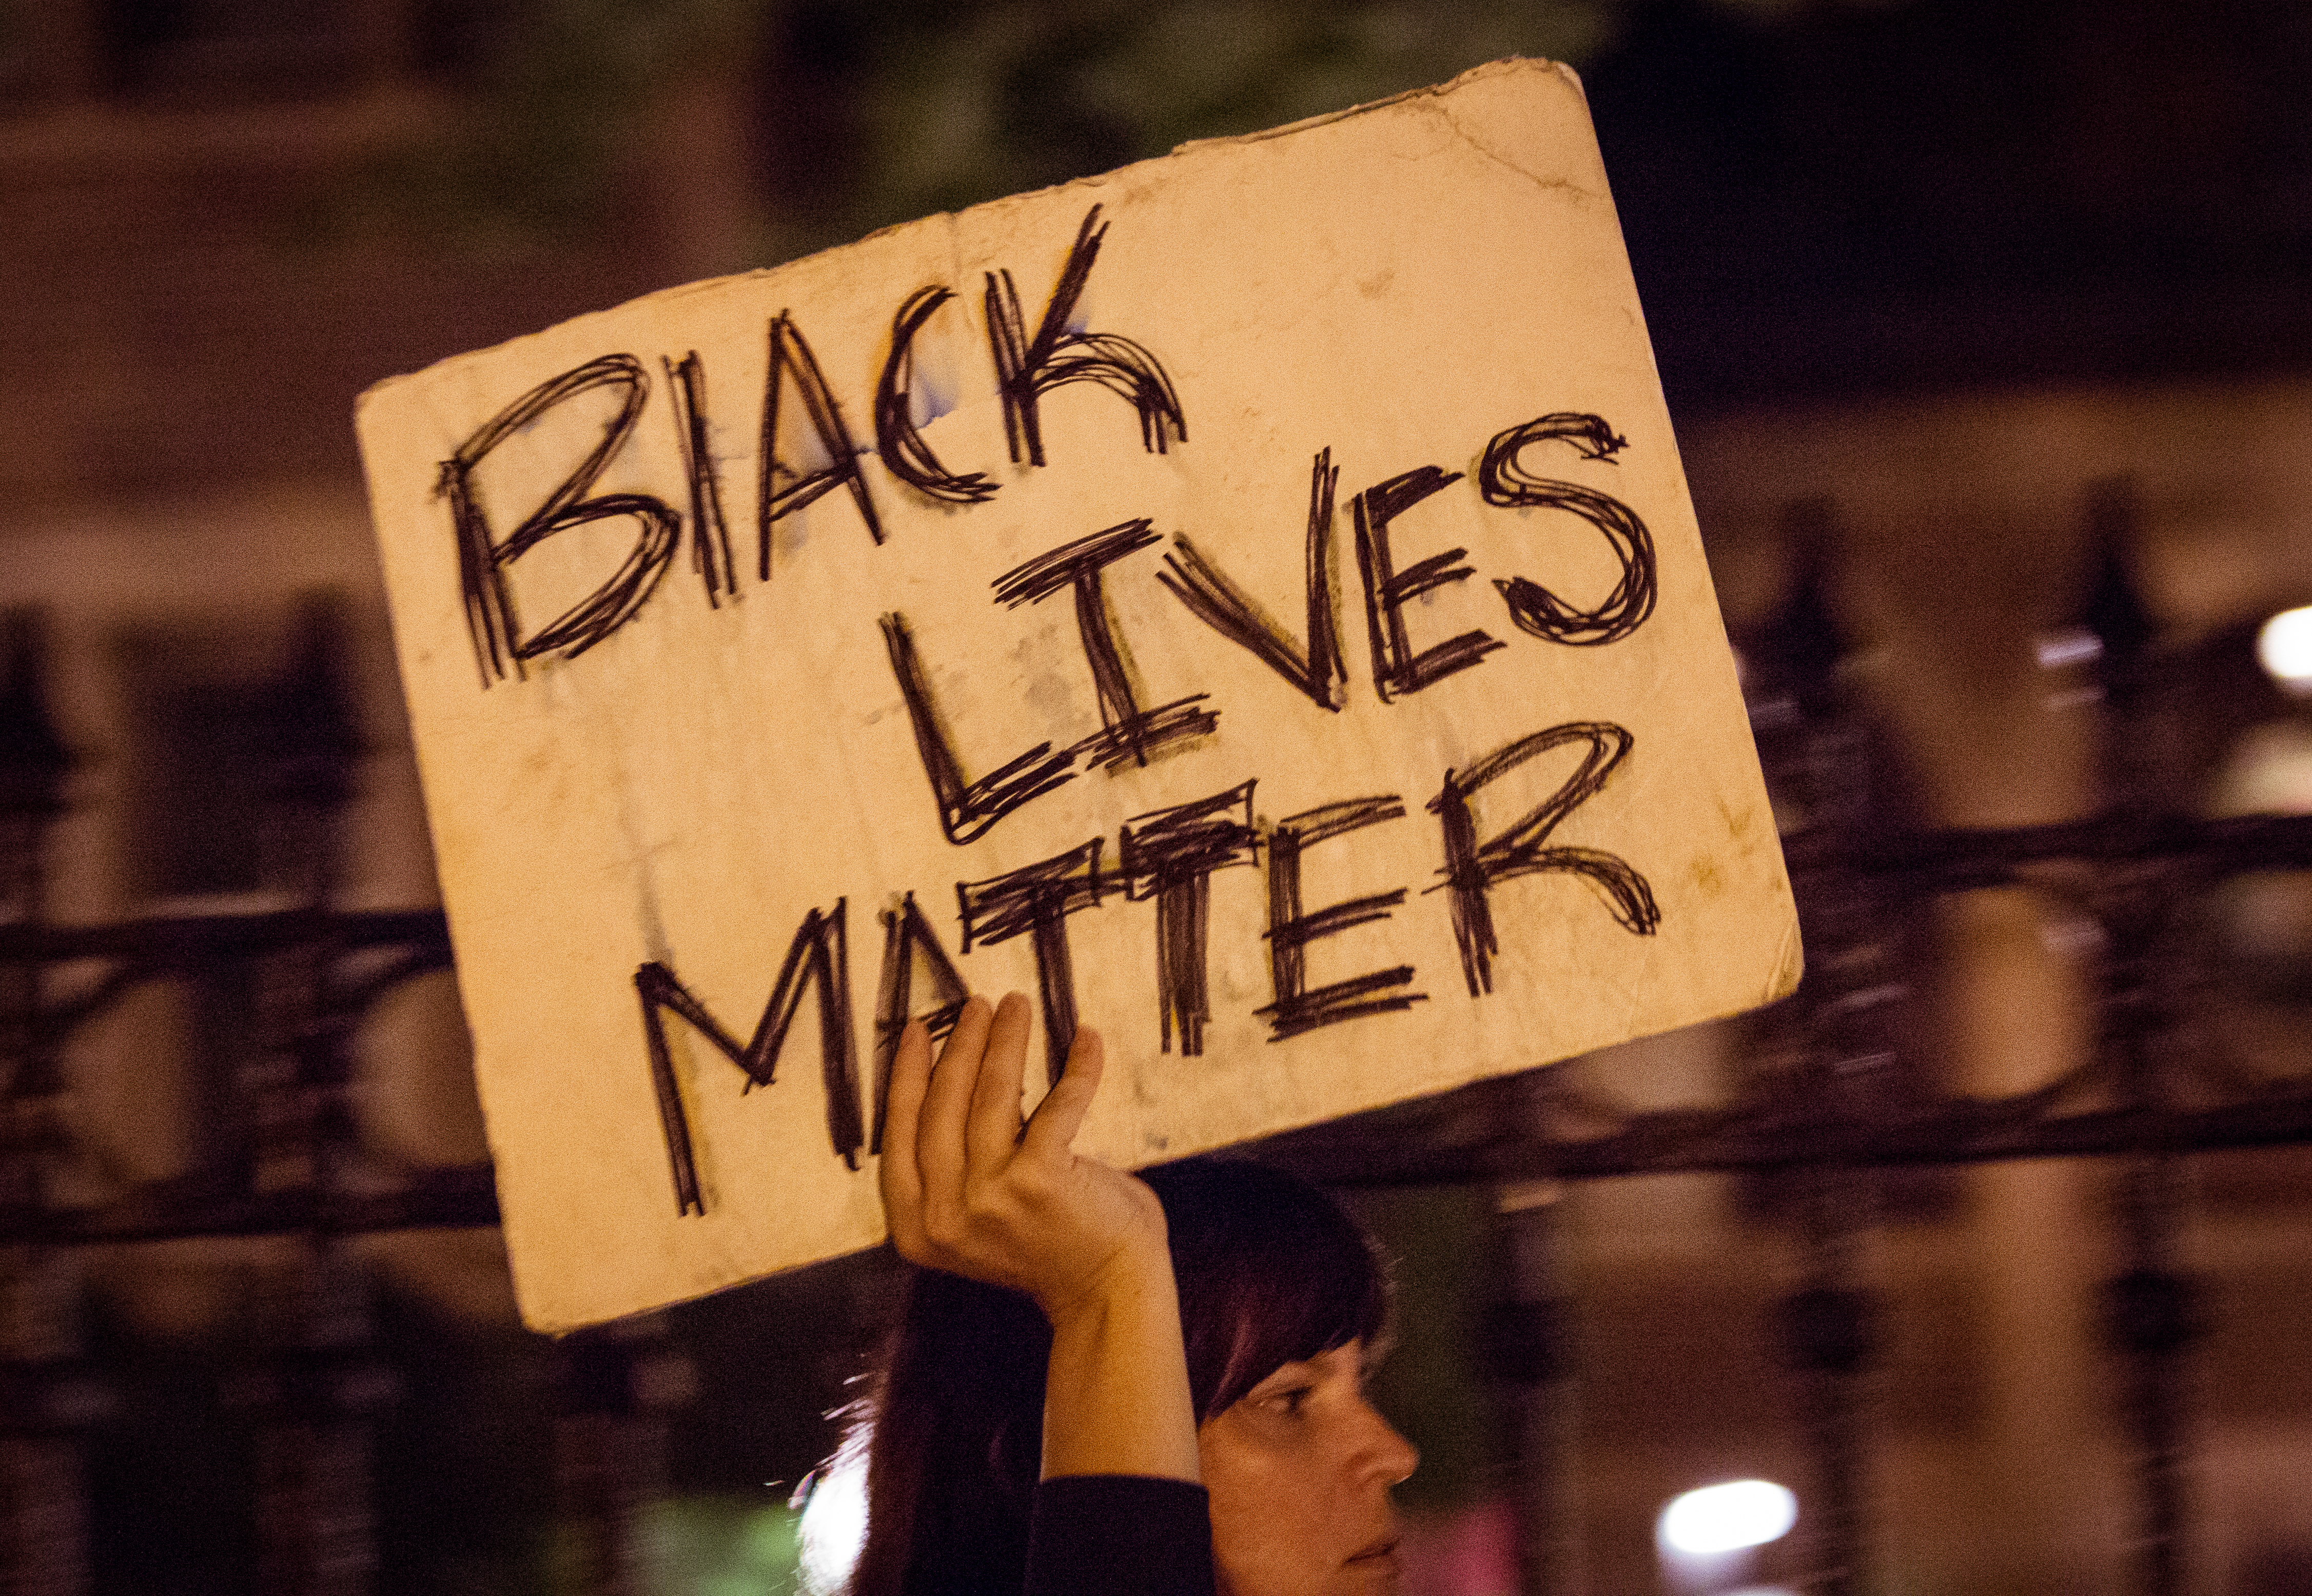 Has Black Lives Matter Reached Beyond Its Grasp?